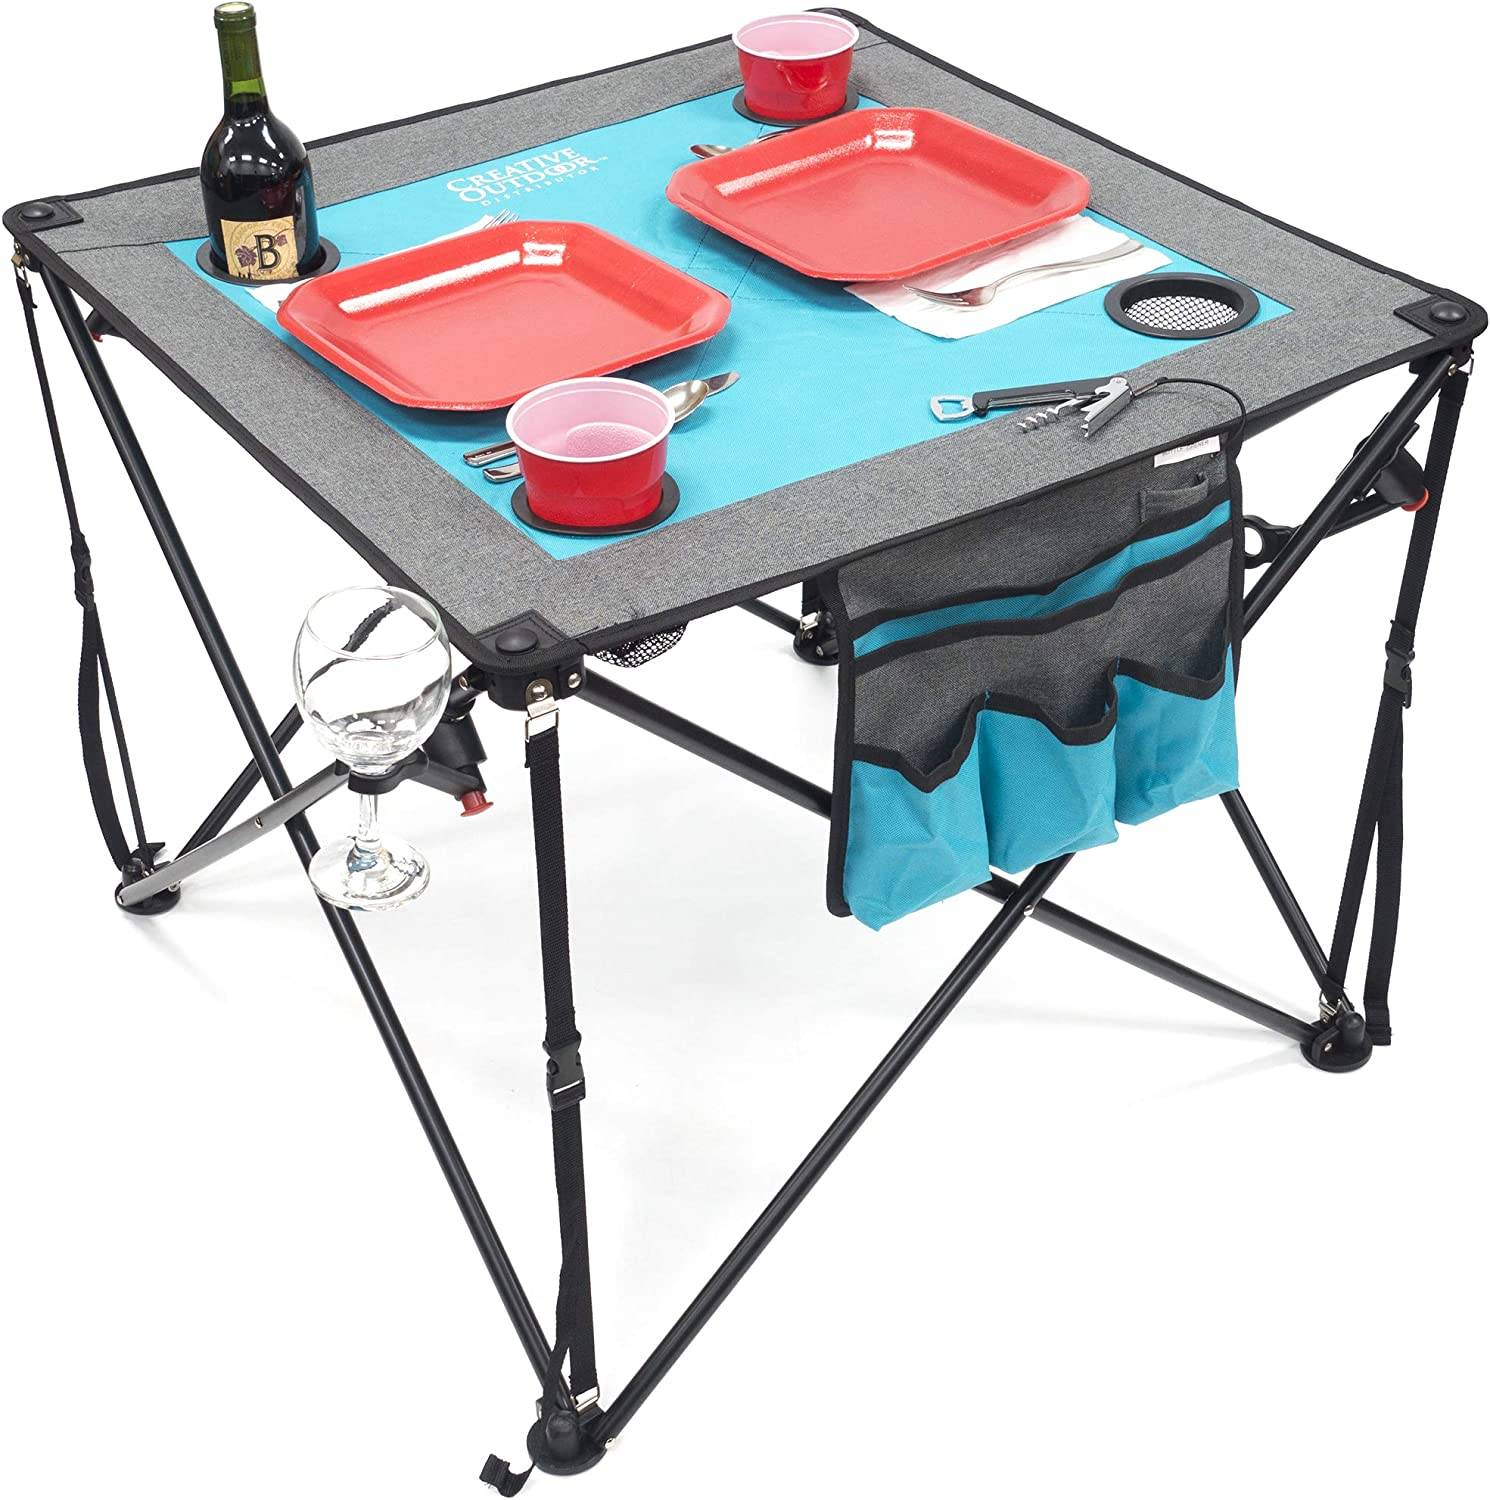 Creative Outdoor Folding Wine Table Portable Camping Beach Picnic Patio Teal Gray